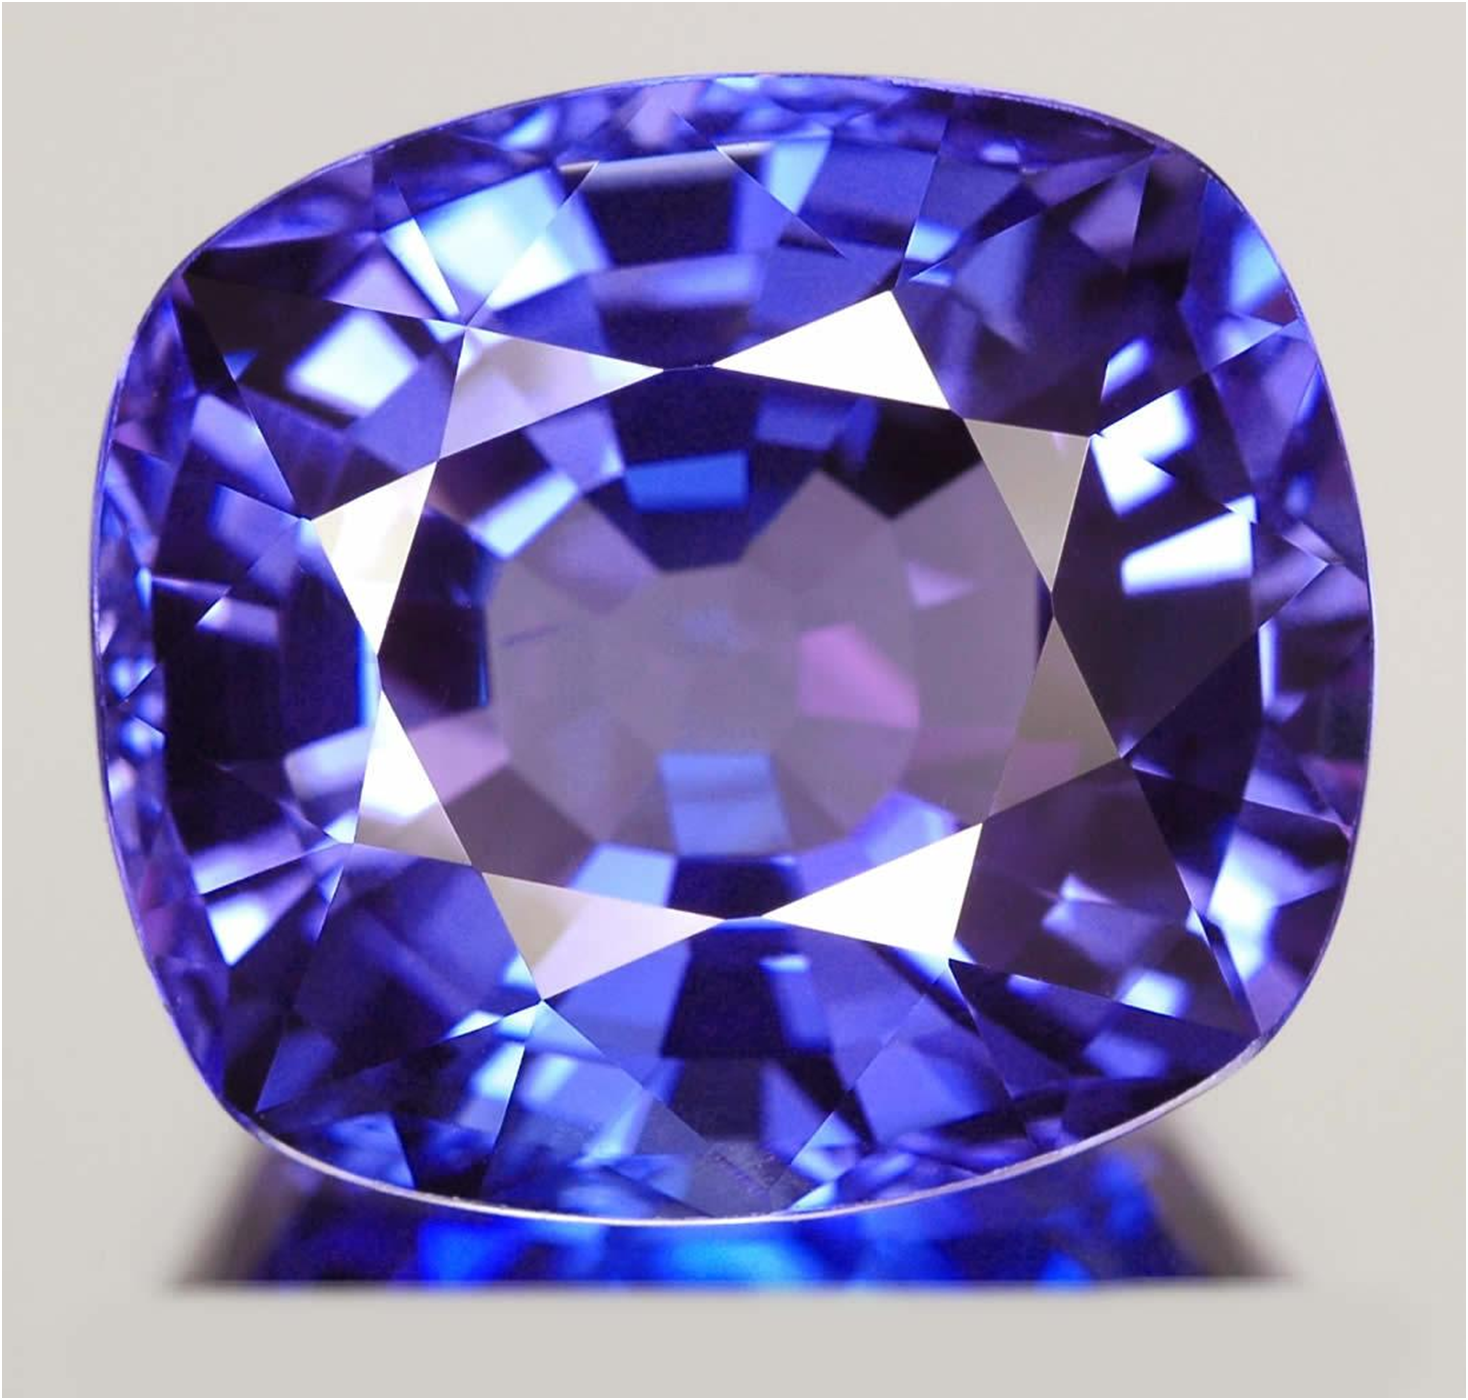 gemsindian sold listing il tanzanite fullxfull by gemstone loose rough